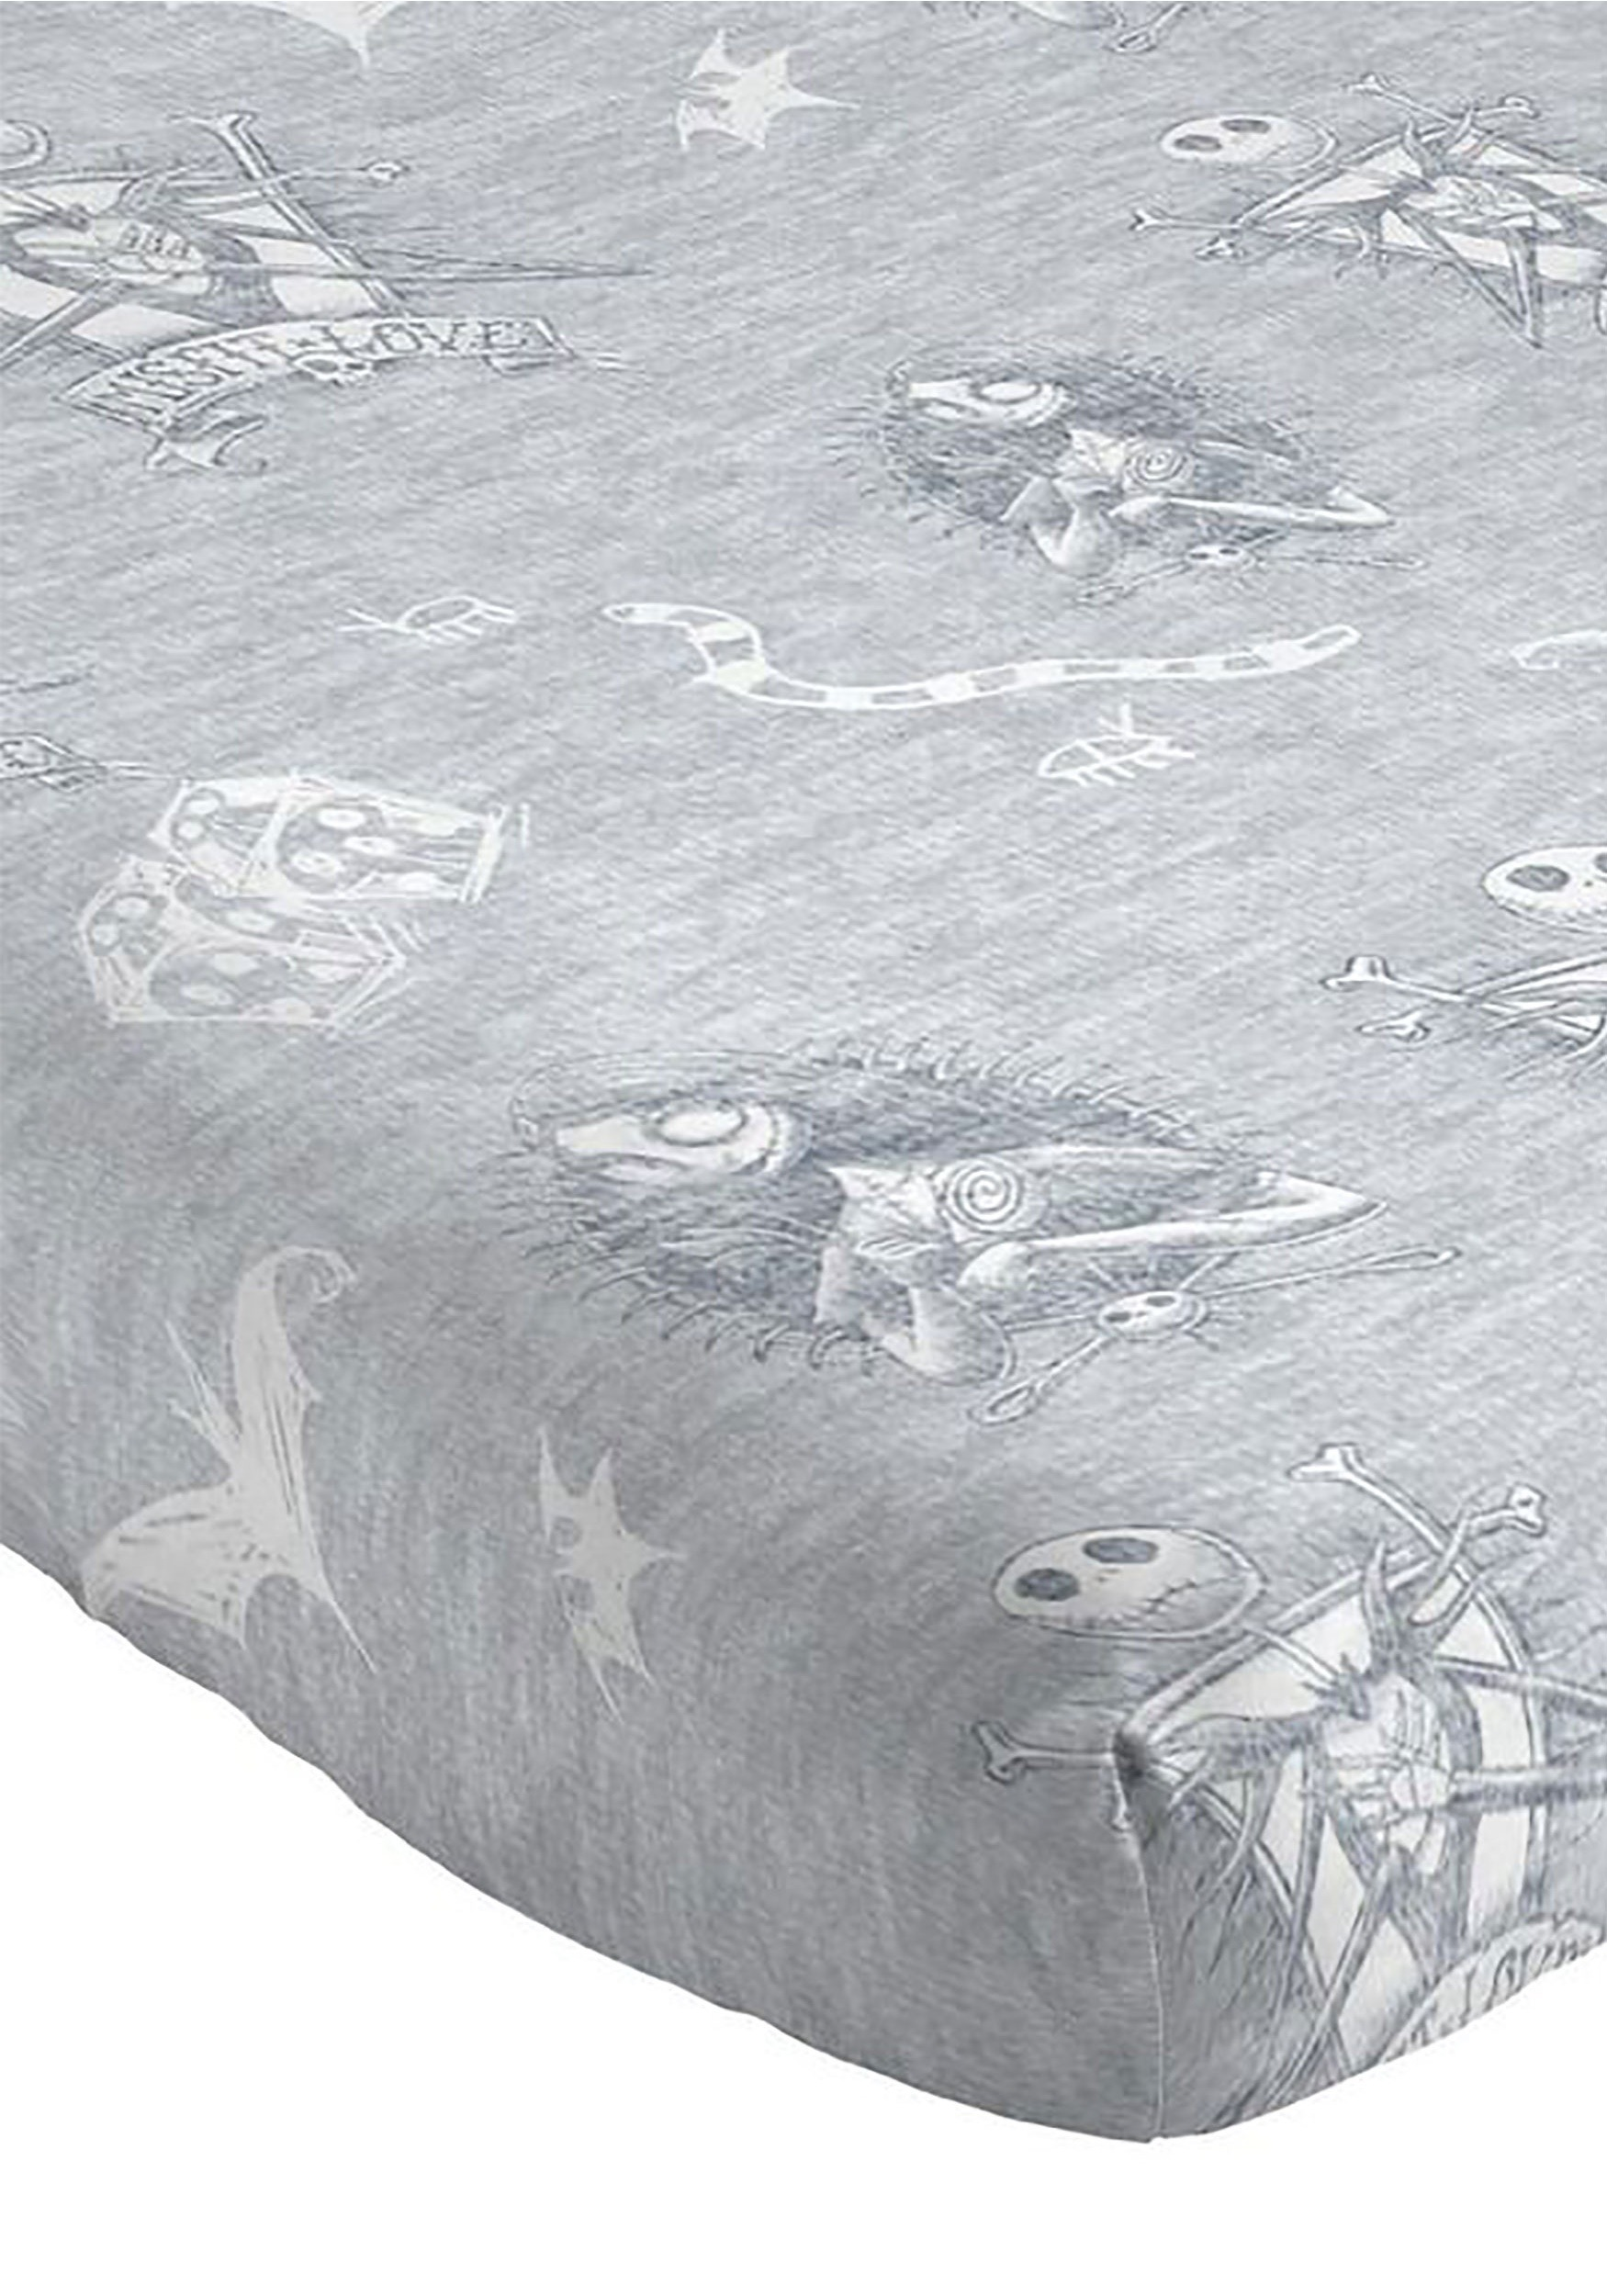 Nightmare Before Christmas Meant To Be 4-Piece Queen Sheet Set